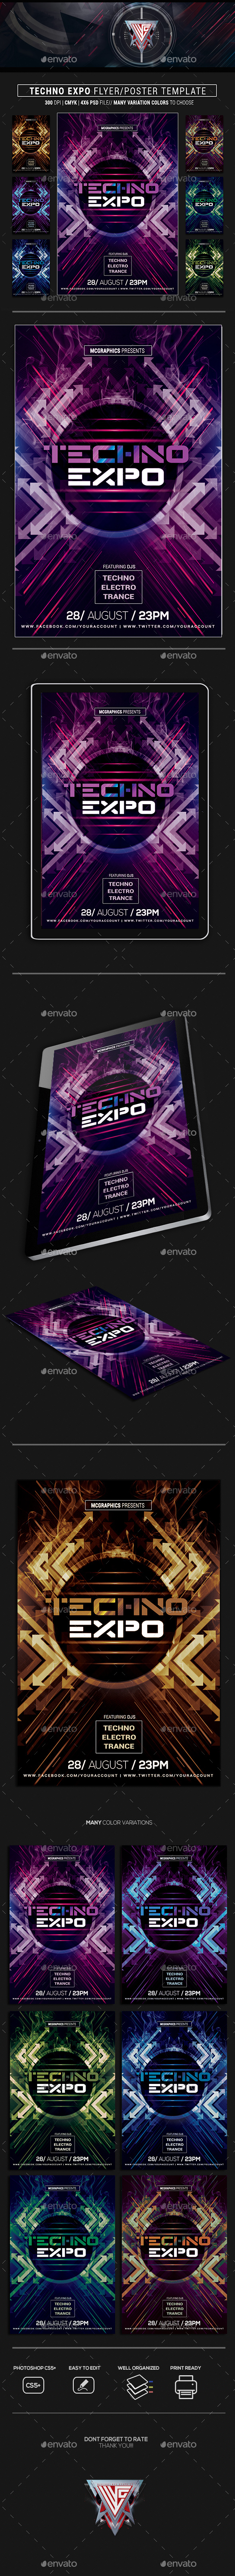 Techno Expo Photoshop Flyer/Poster Template - Flyers Print Templates